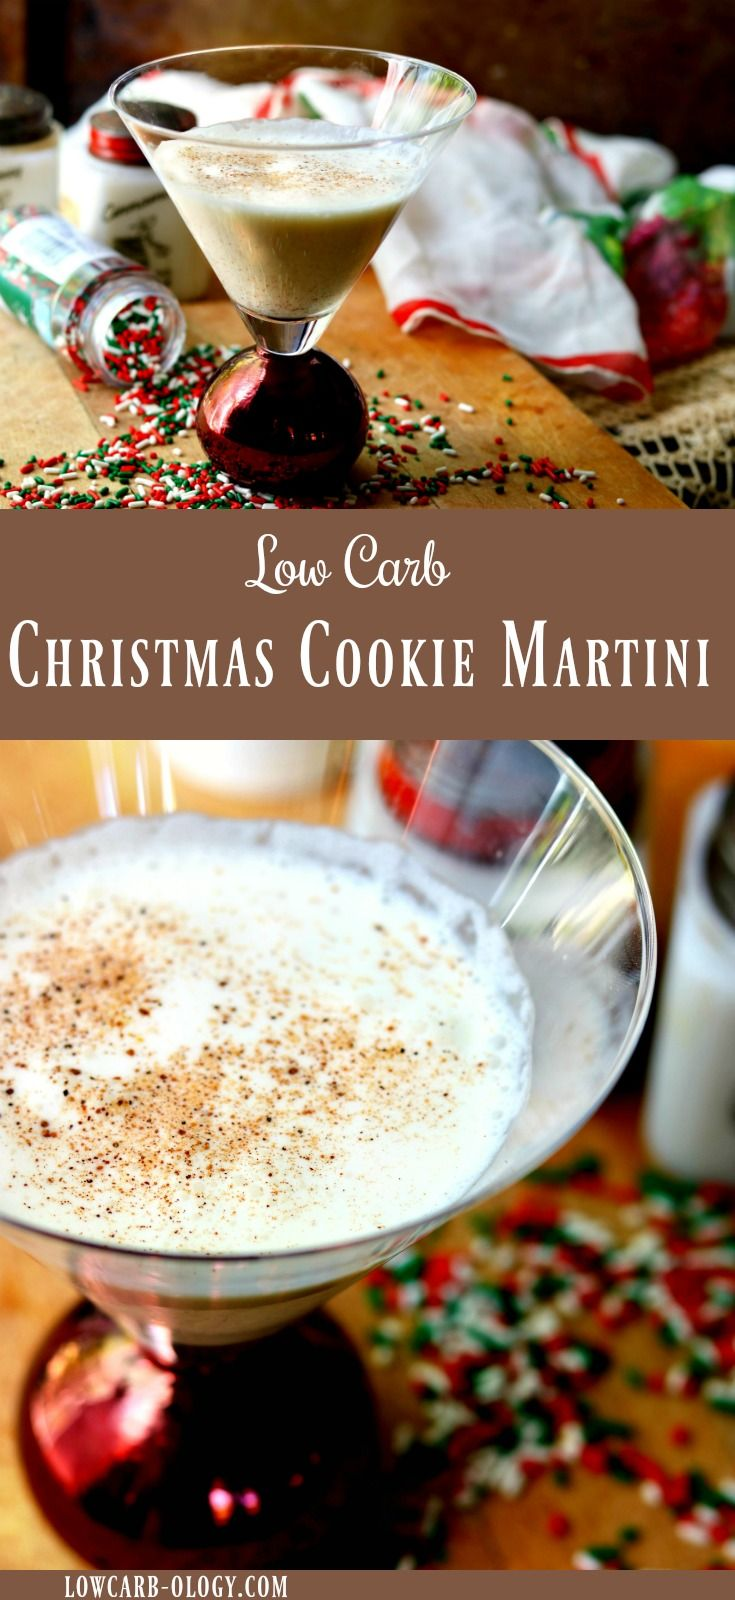 Welcome the holidays with this creamy, low carb, Christmas Cookie Martini recipe. It's just one carb and so easy to make! You'll have a gorgeous, signature holiday cocktail without going over your carb allotment. #lowcarb #cocktail #holidays